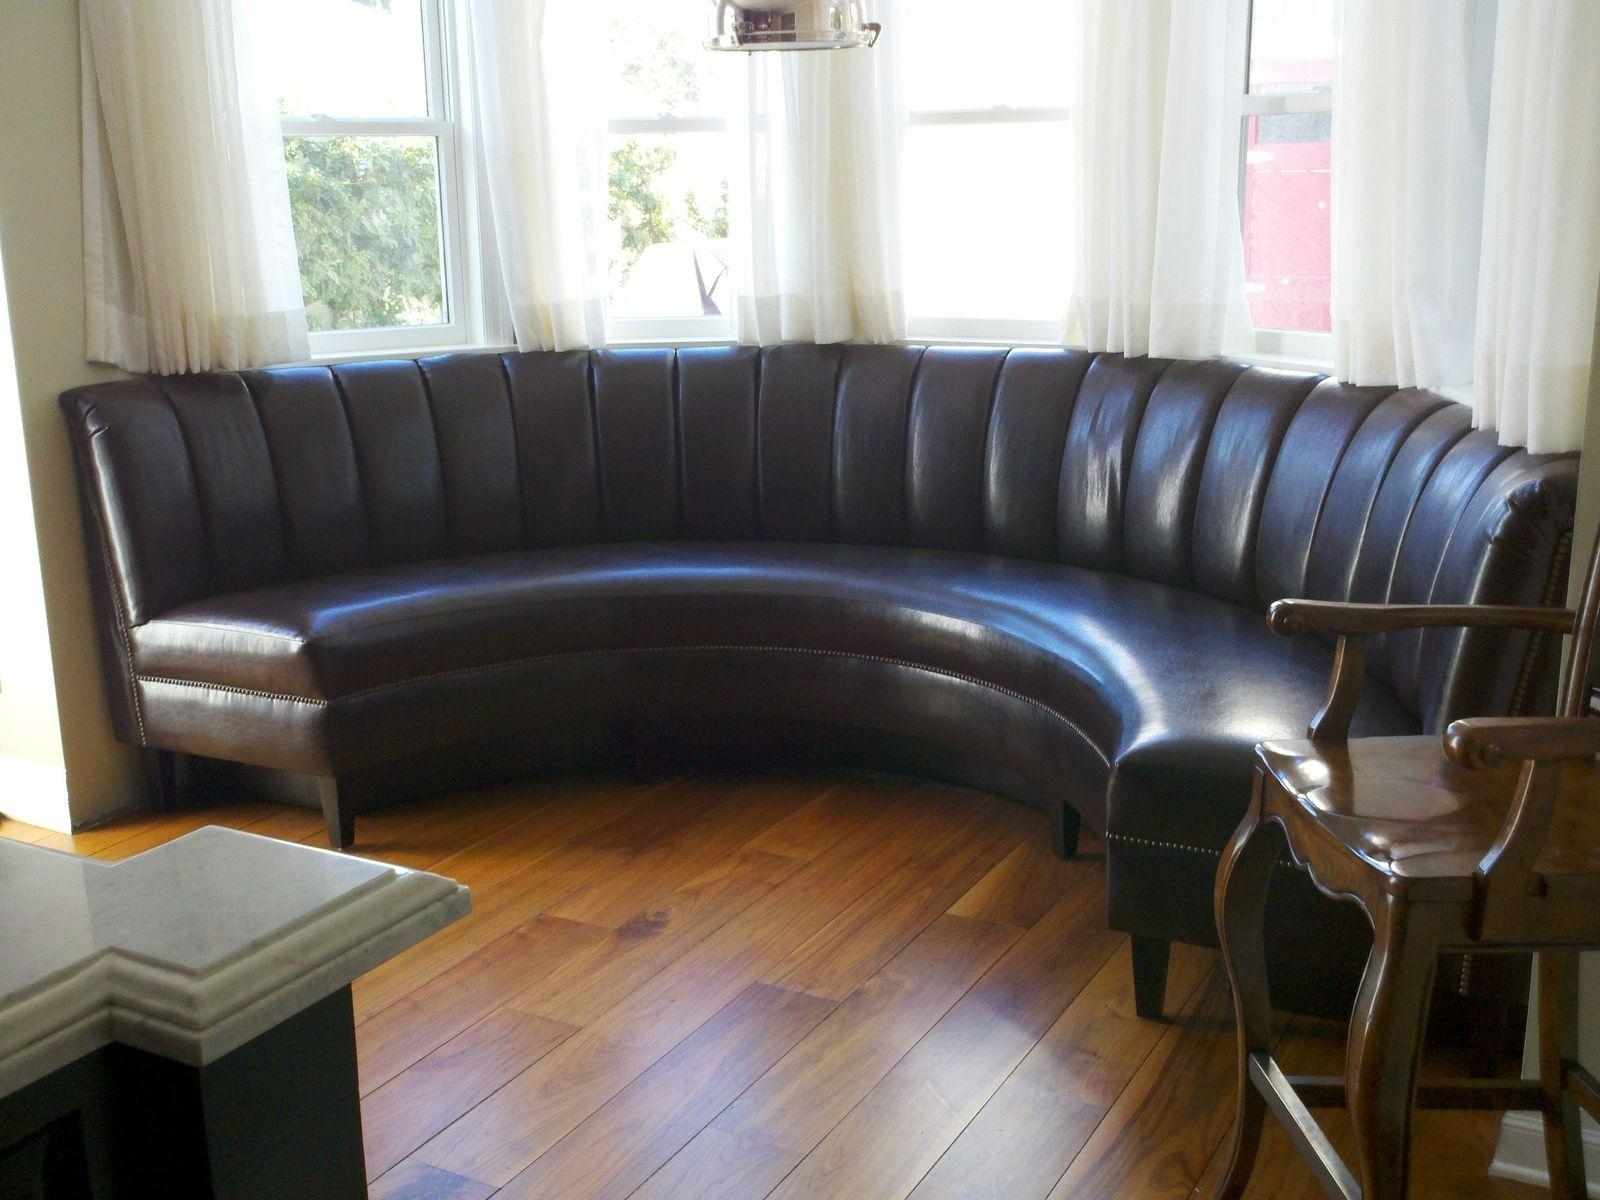 Custom Sofas | Sectional And Leather Couches | Custommade With Customized Sofas (Image 6 of 20)